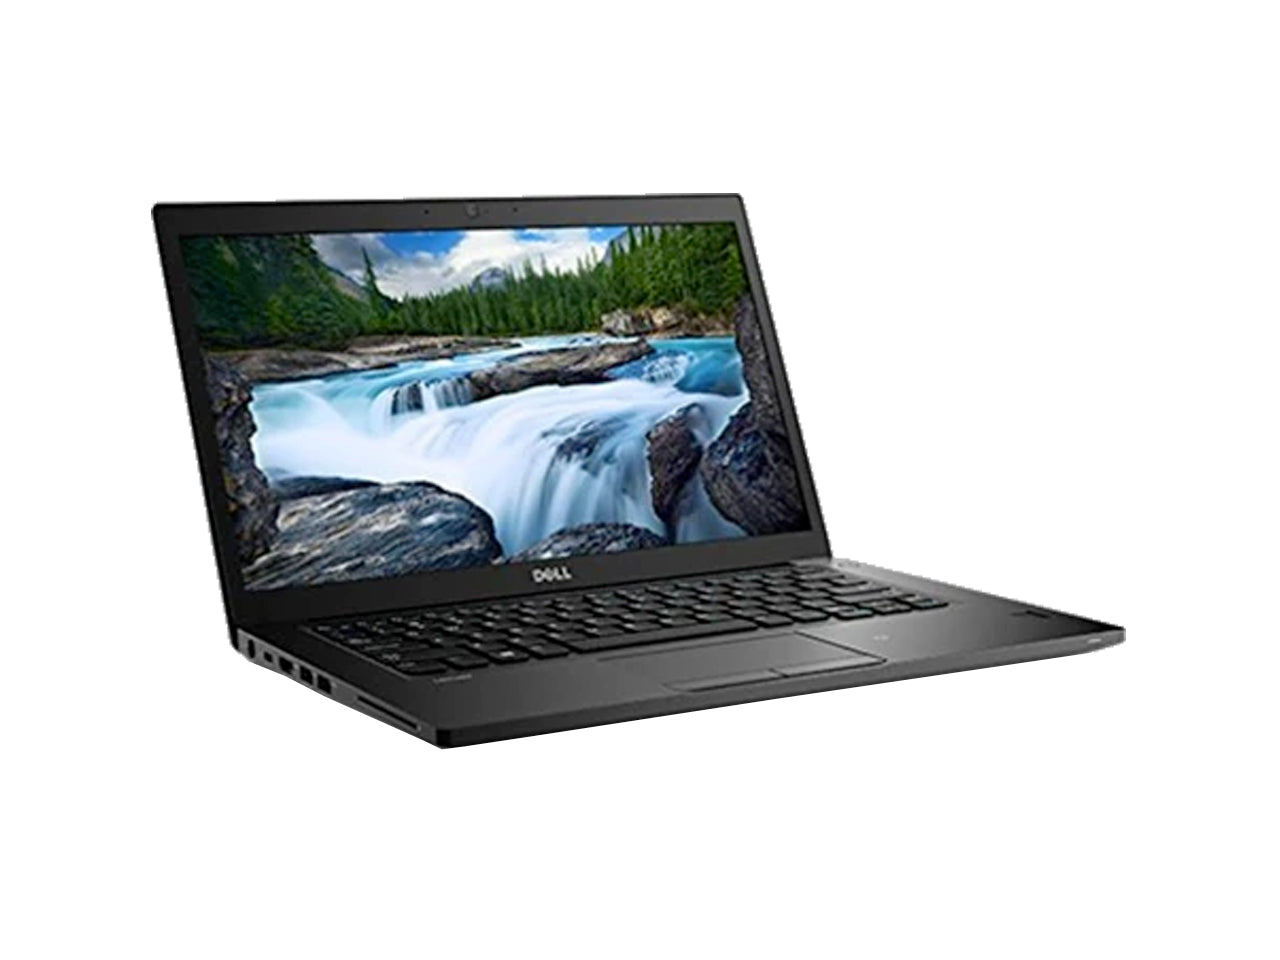 Dell latitude 7480 i5-7300U 2.6GHz 8GB FHD laptop-computerspace